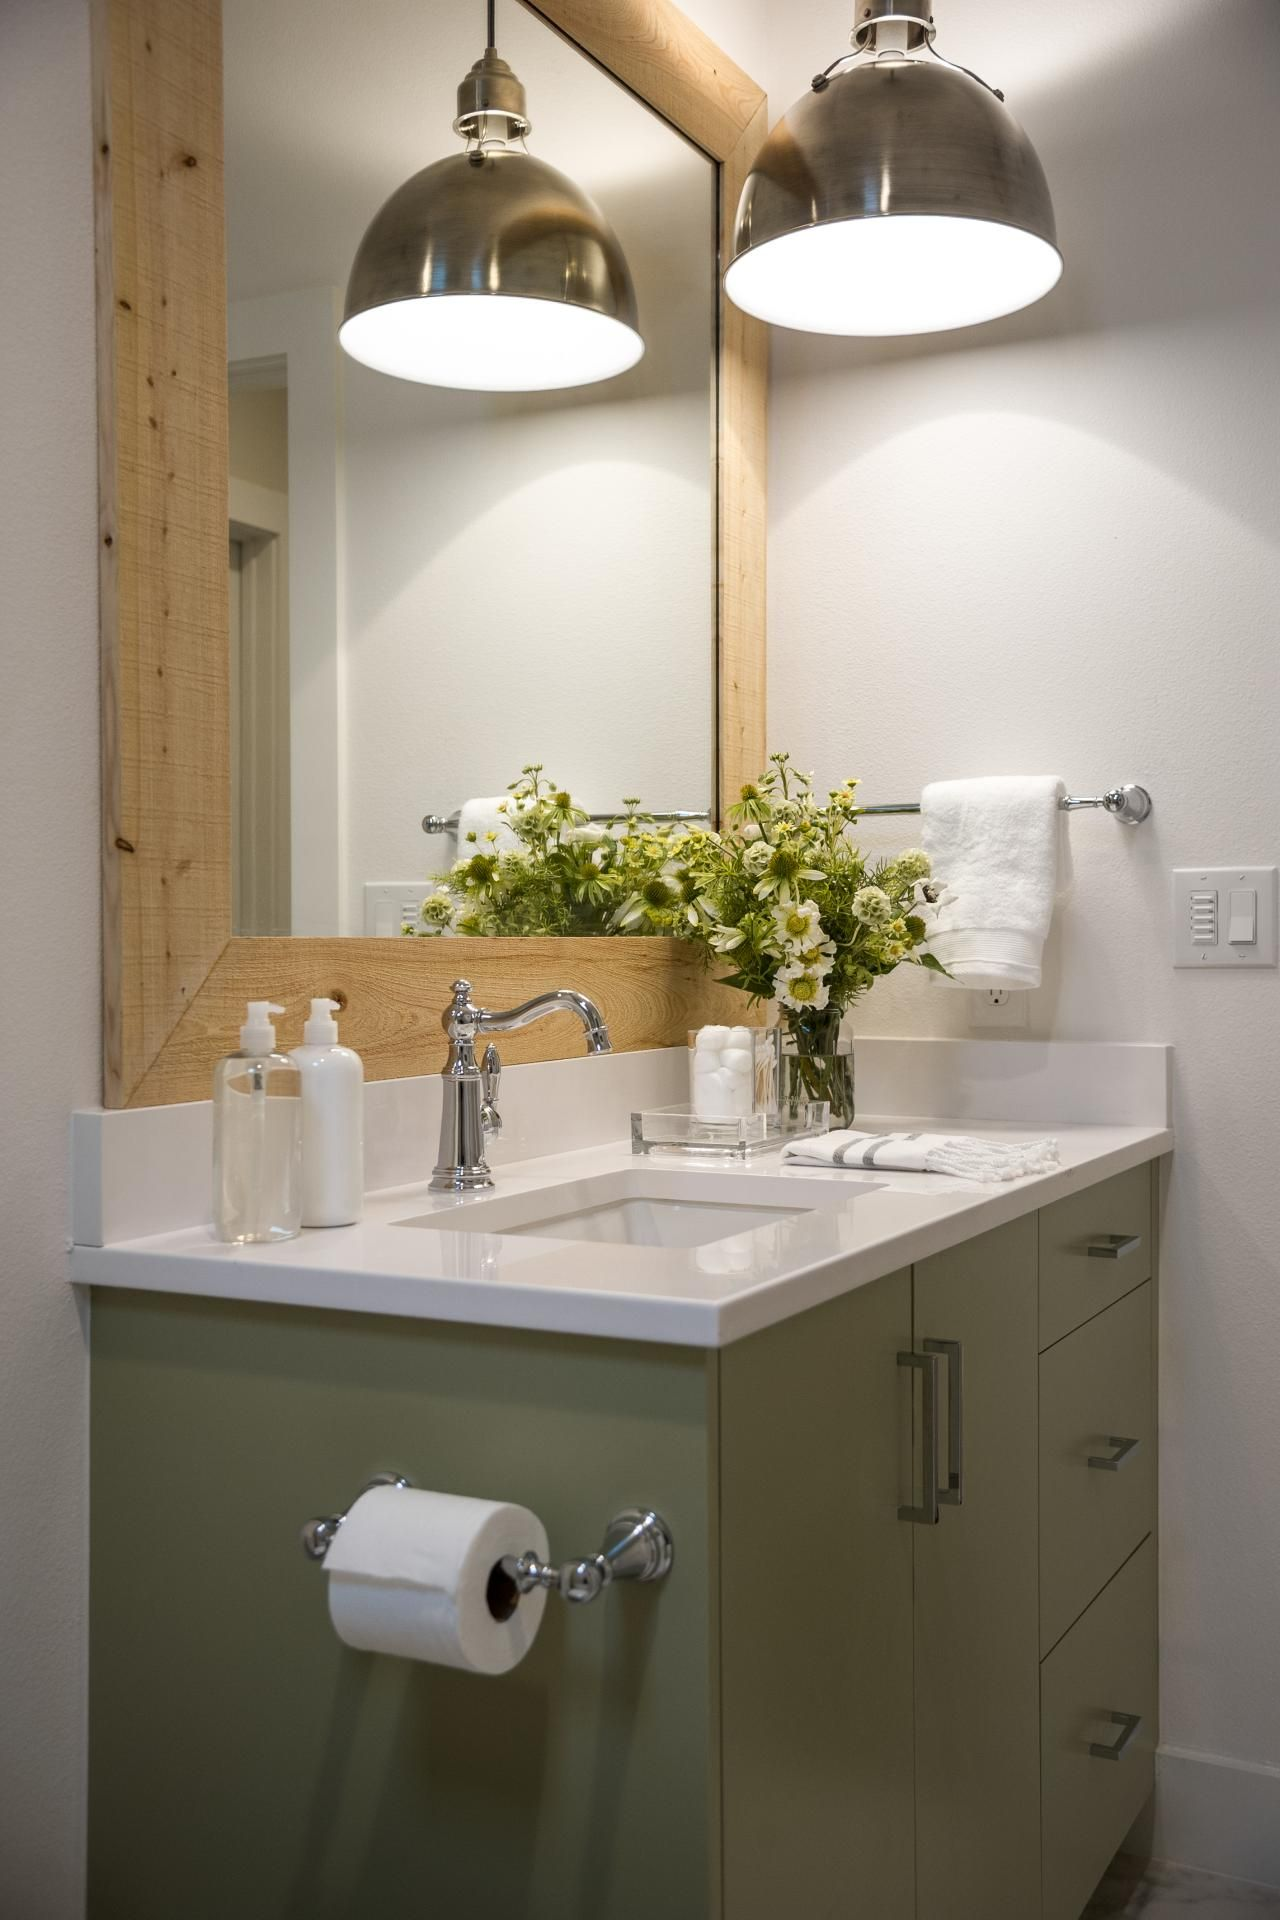 Kids Bathroom Pictures From Hgtv Smart Home 2015 Hgtv